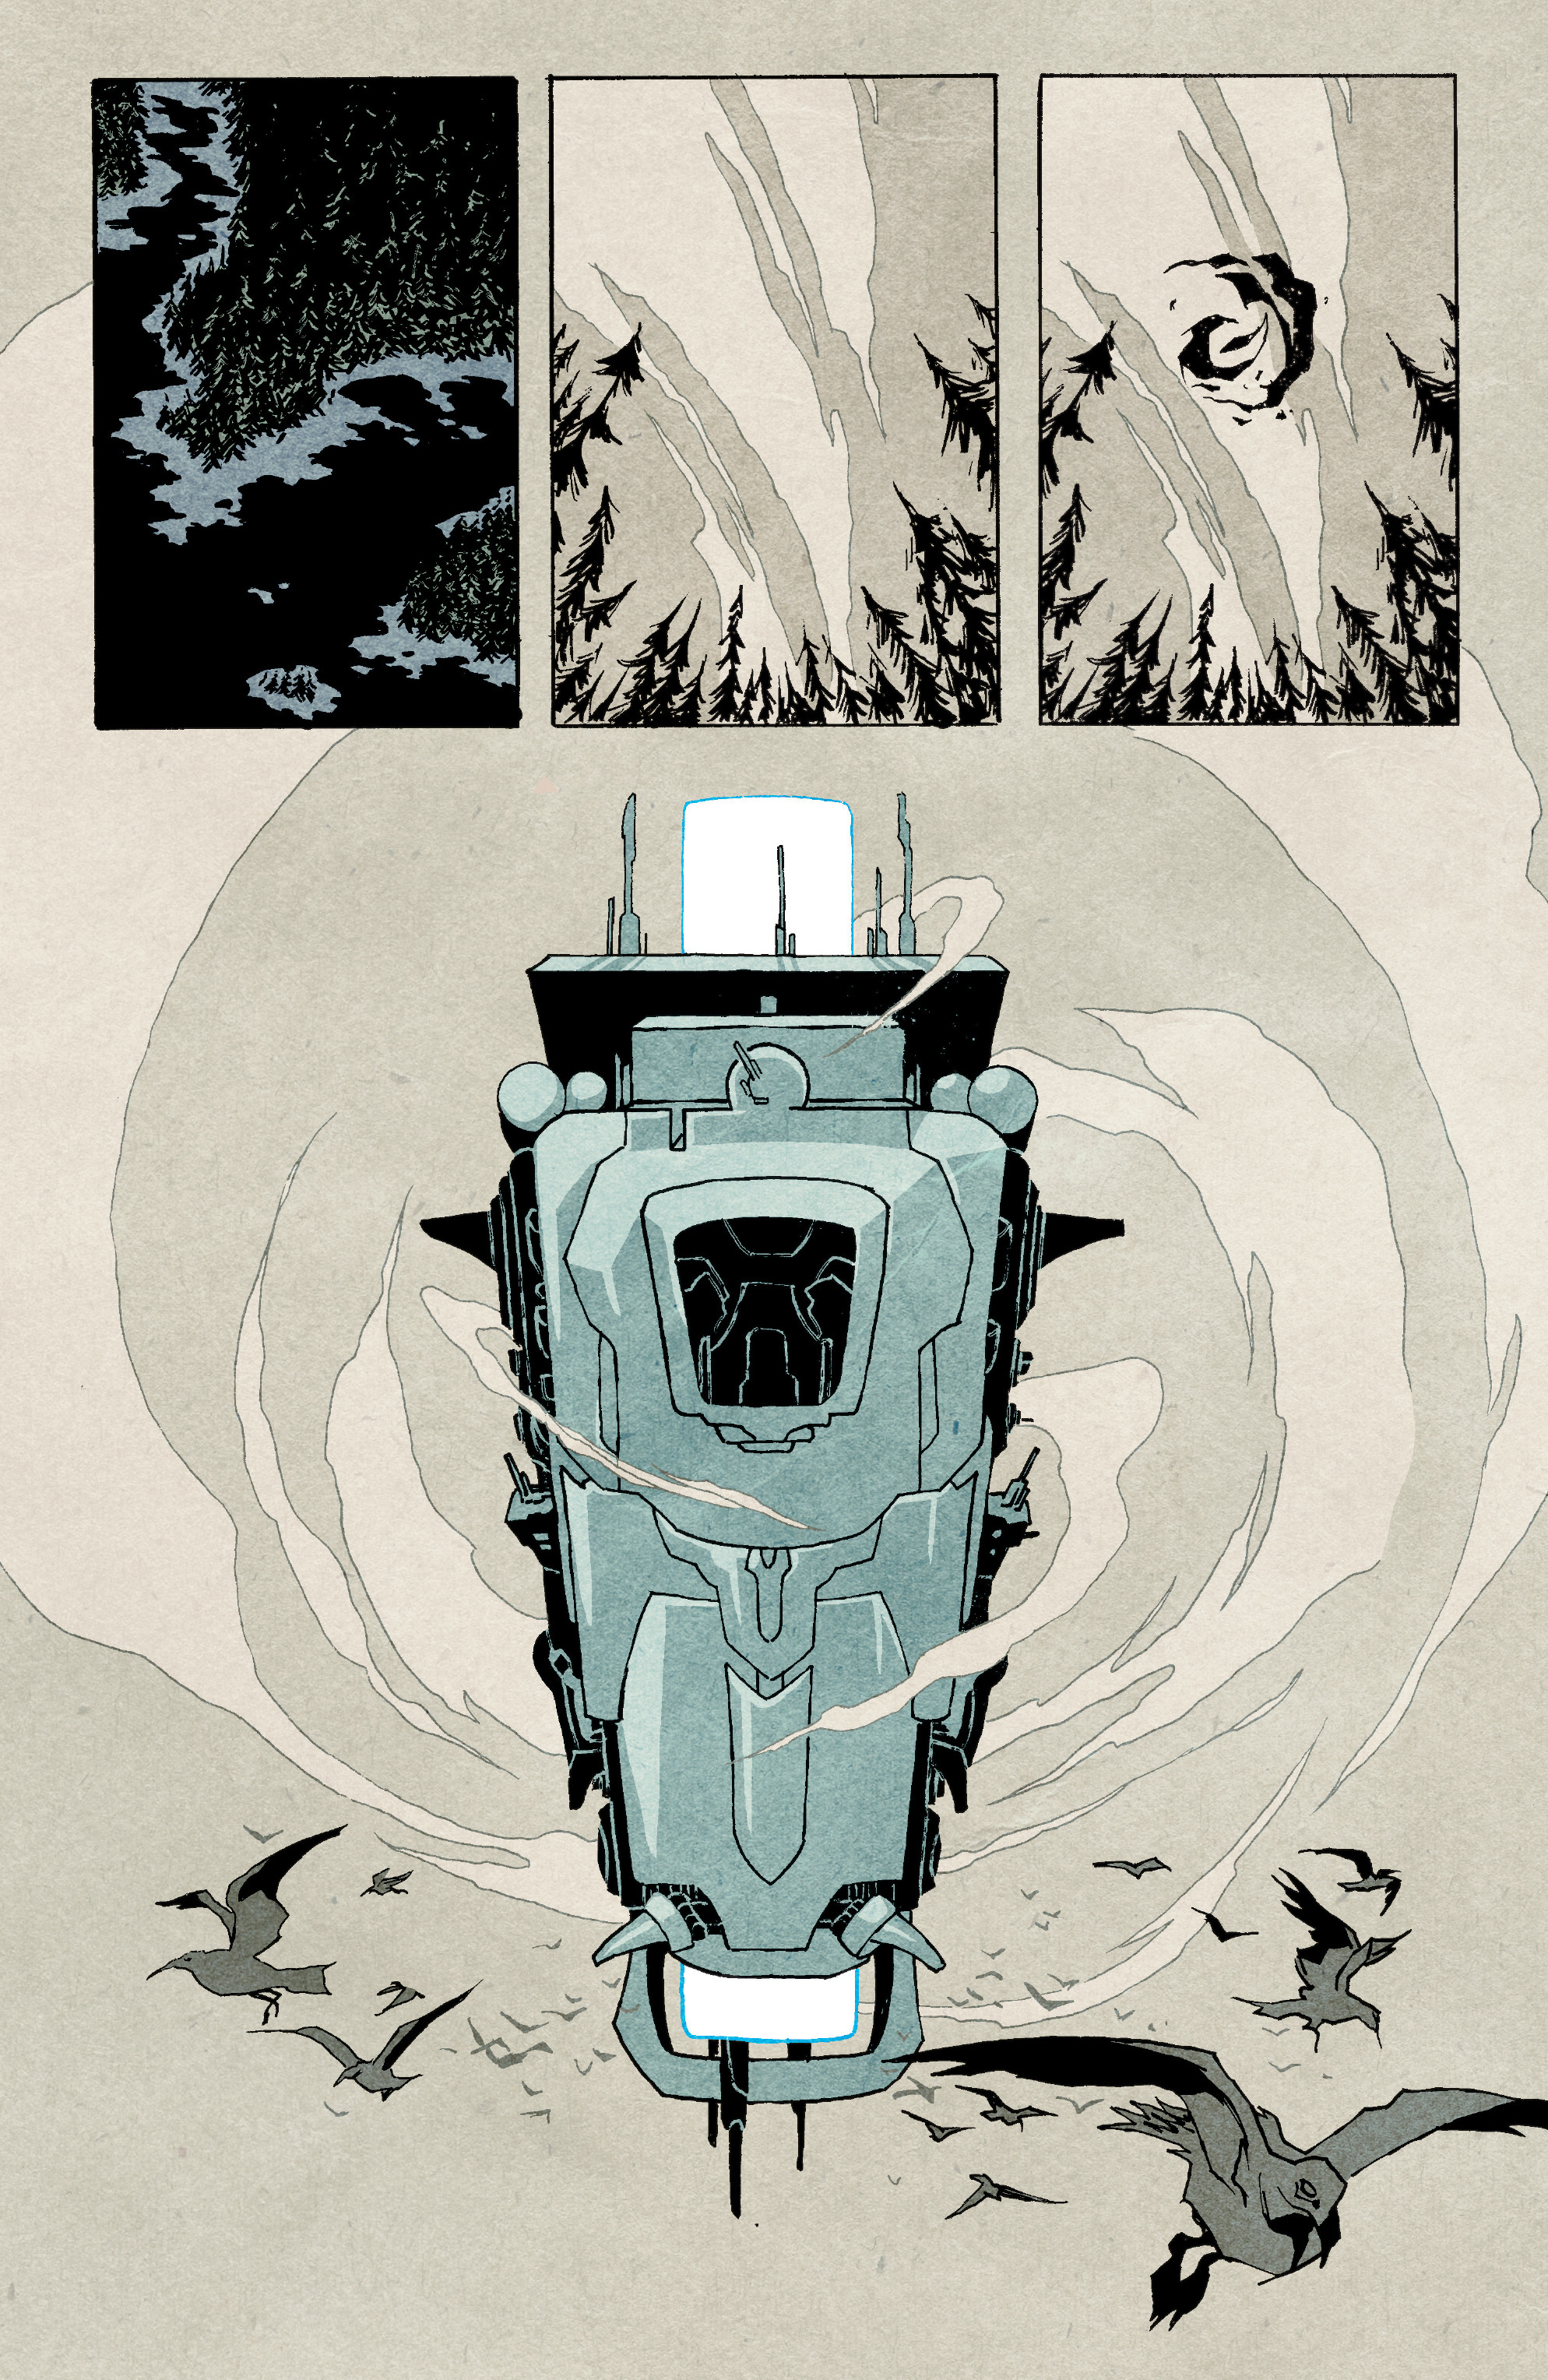 Read online Shipwreck comic -  Issue #4 - 21